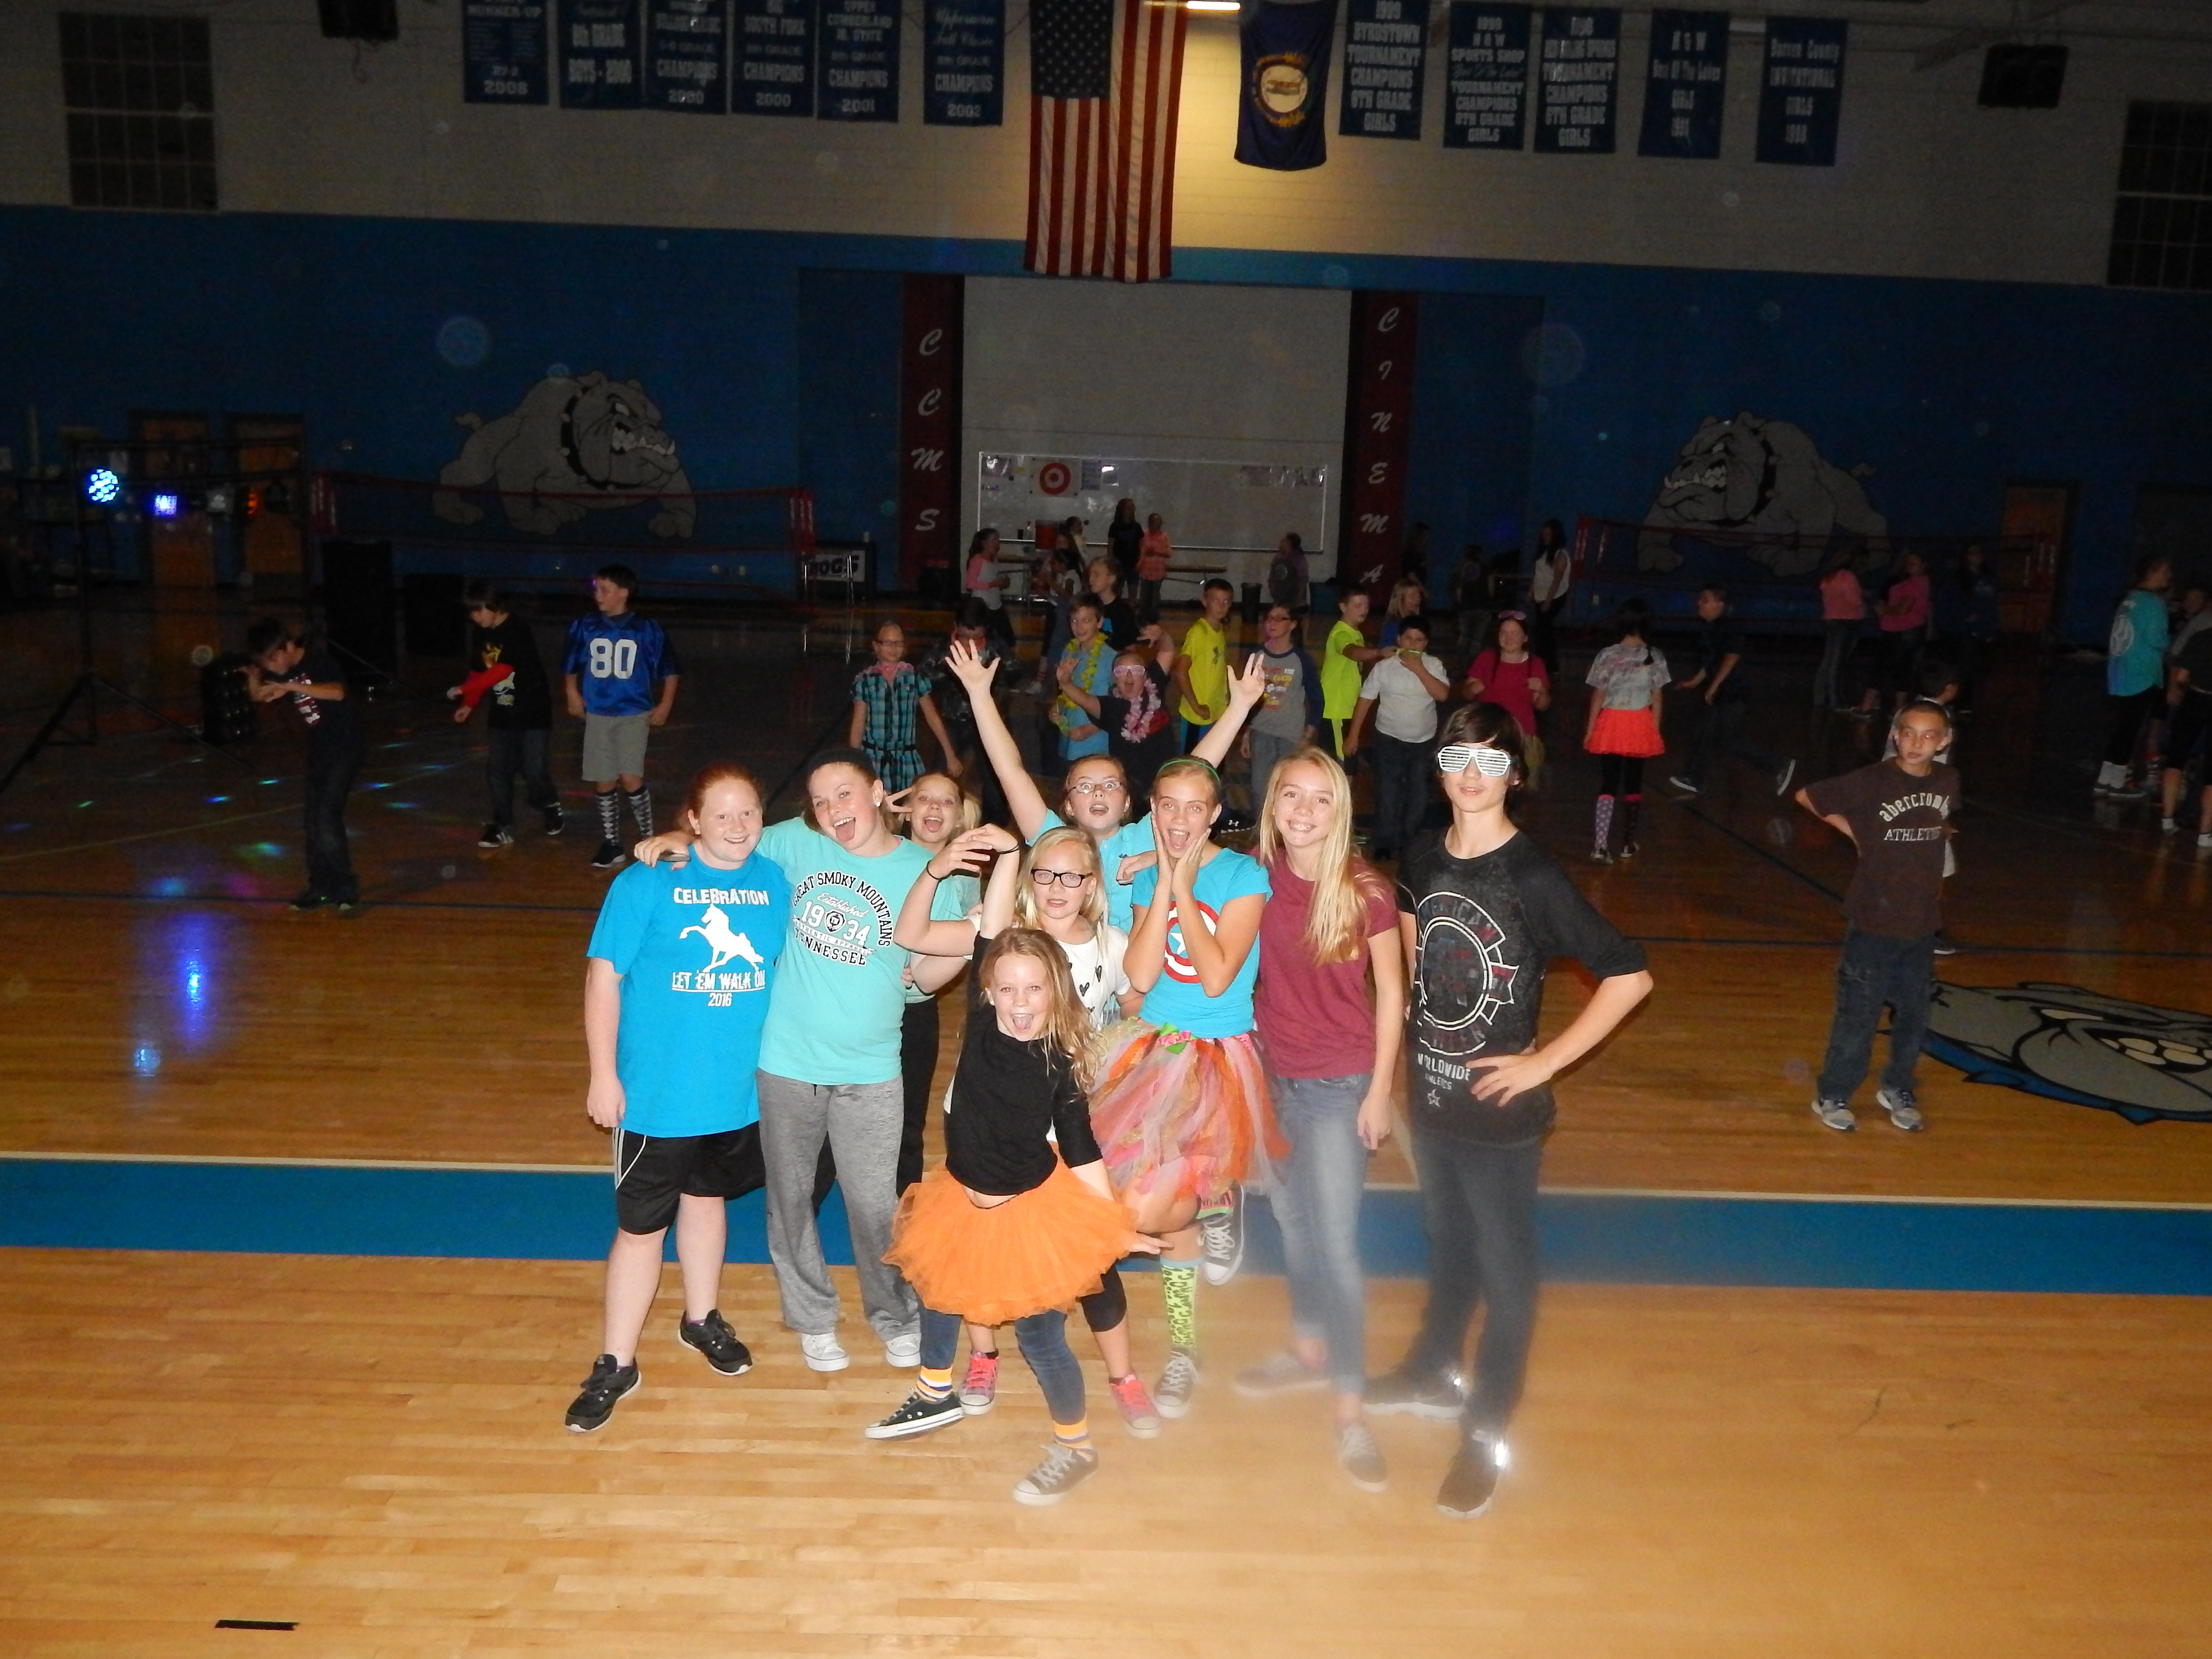 On Thursday, November 3rd, the Clinton County Middle School KUNA Club sponsored a Silly Sock Hop fundraiser event.